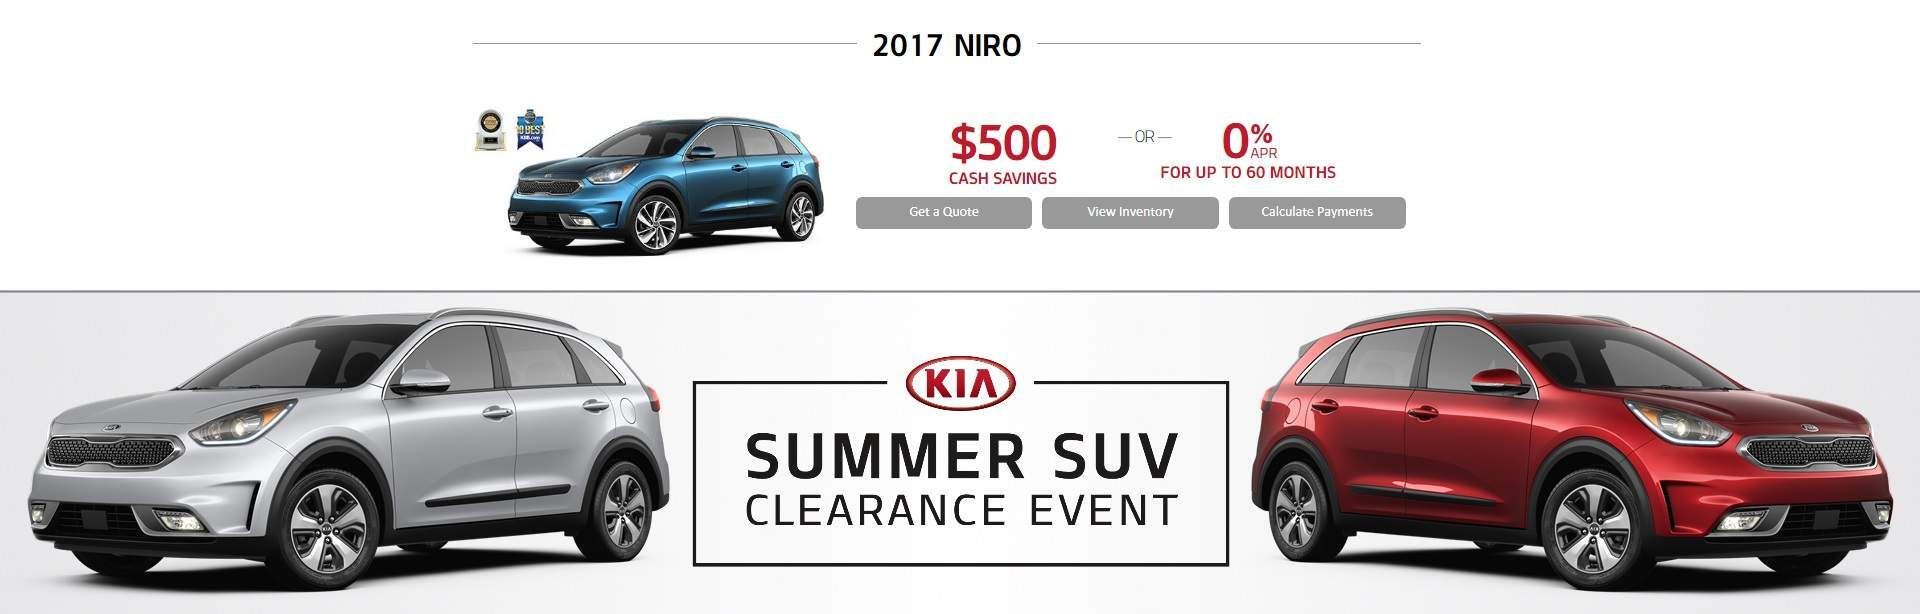 Summer SUV Clearance Event: NIRO